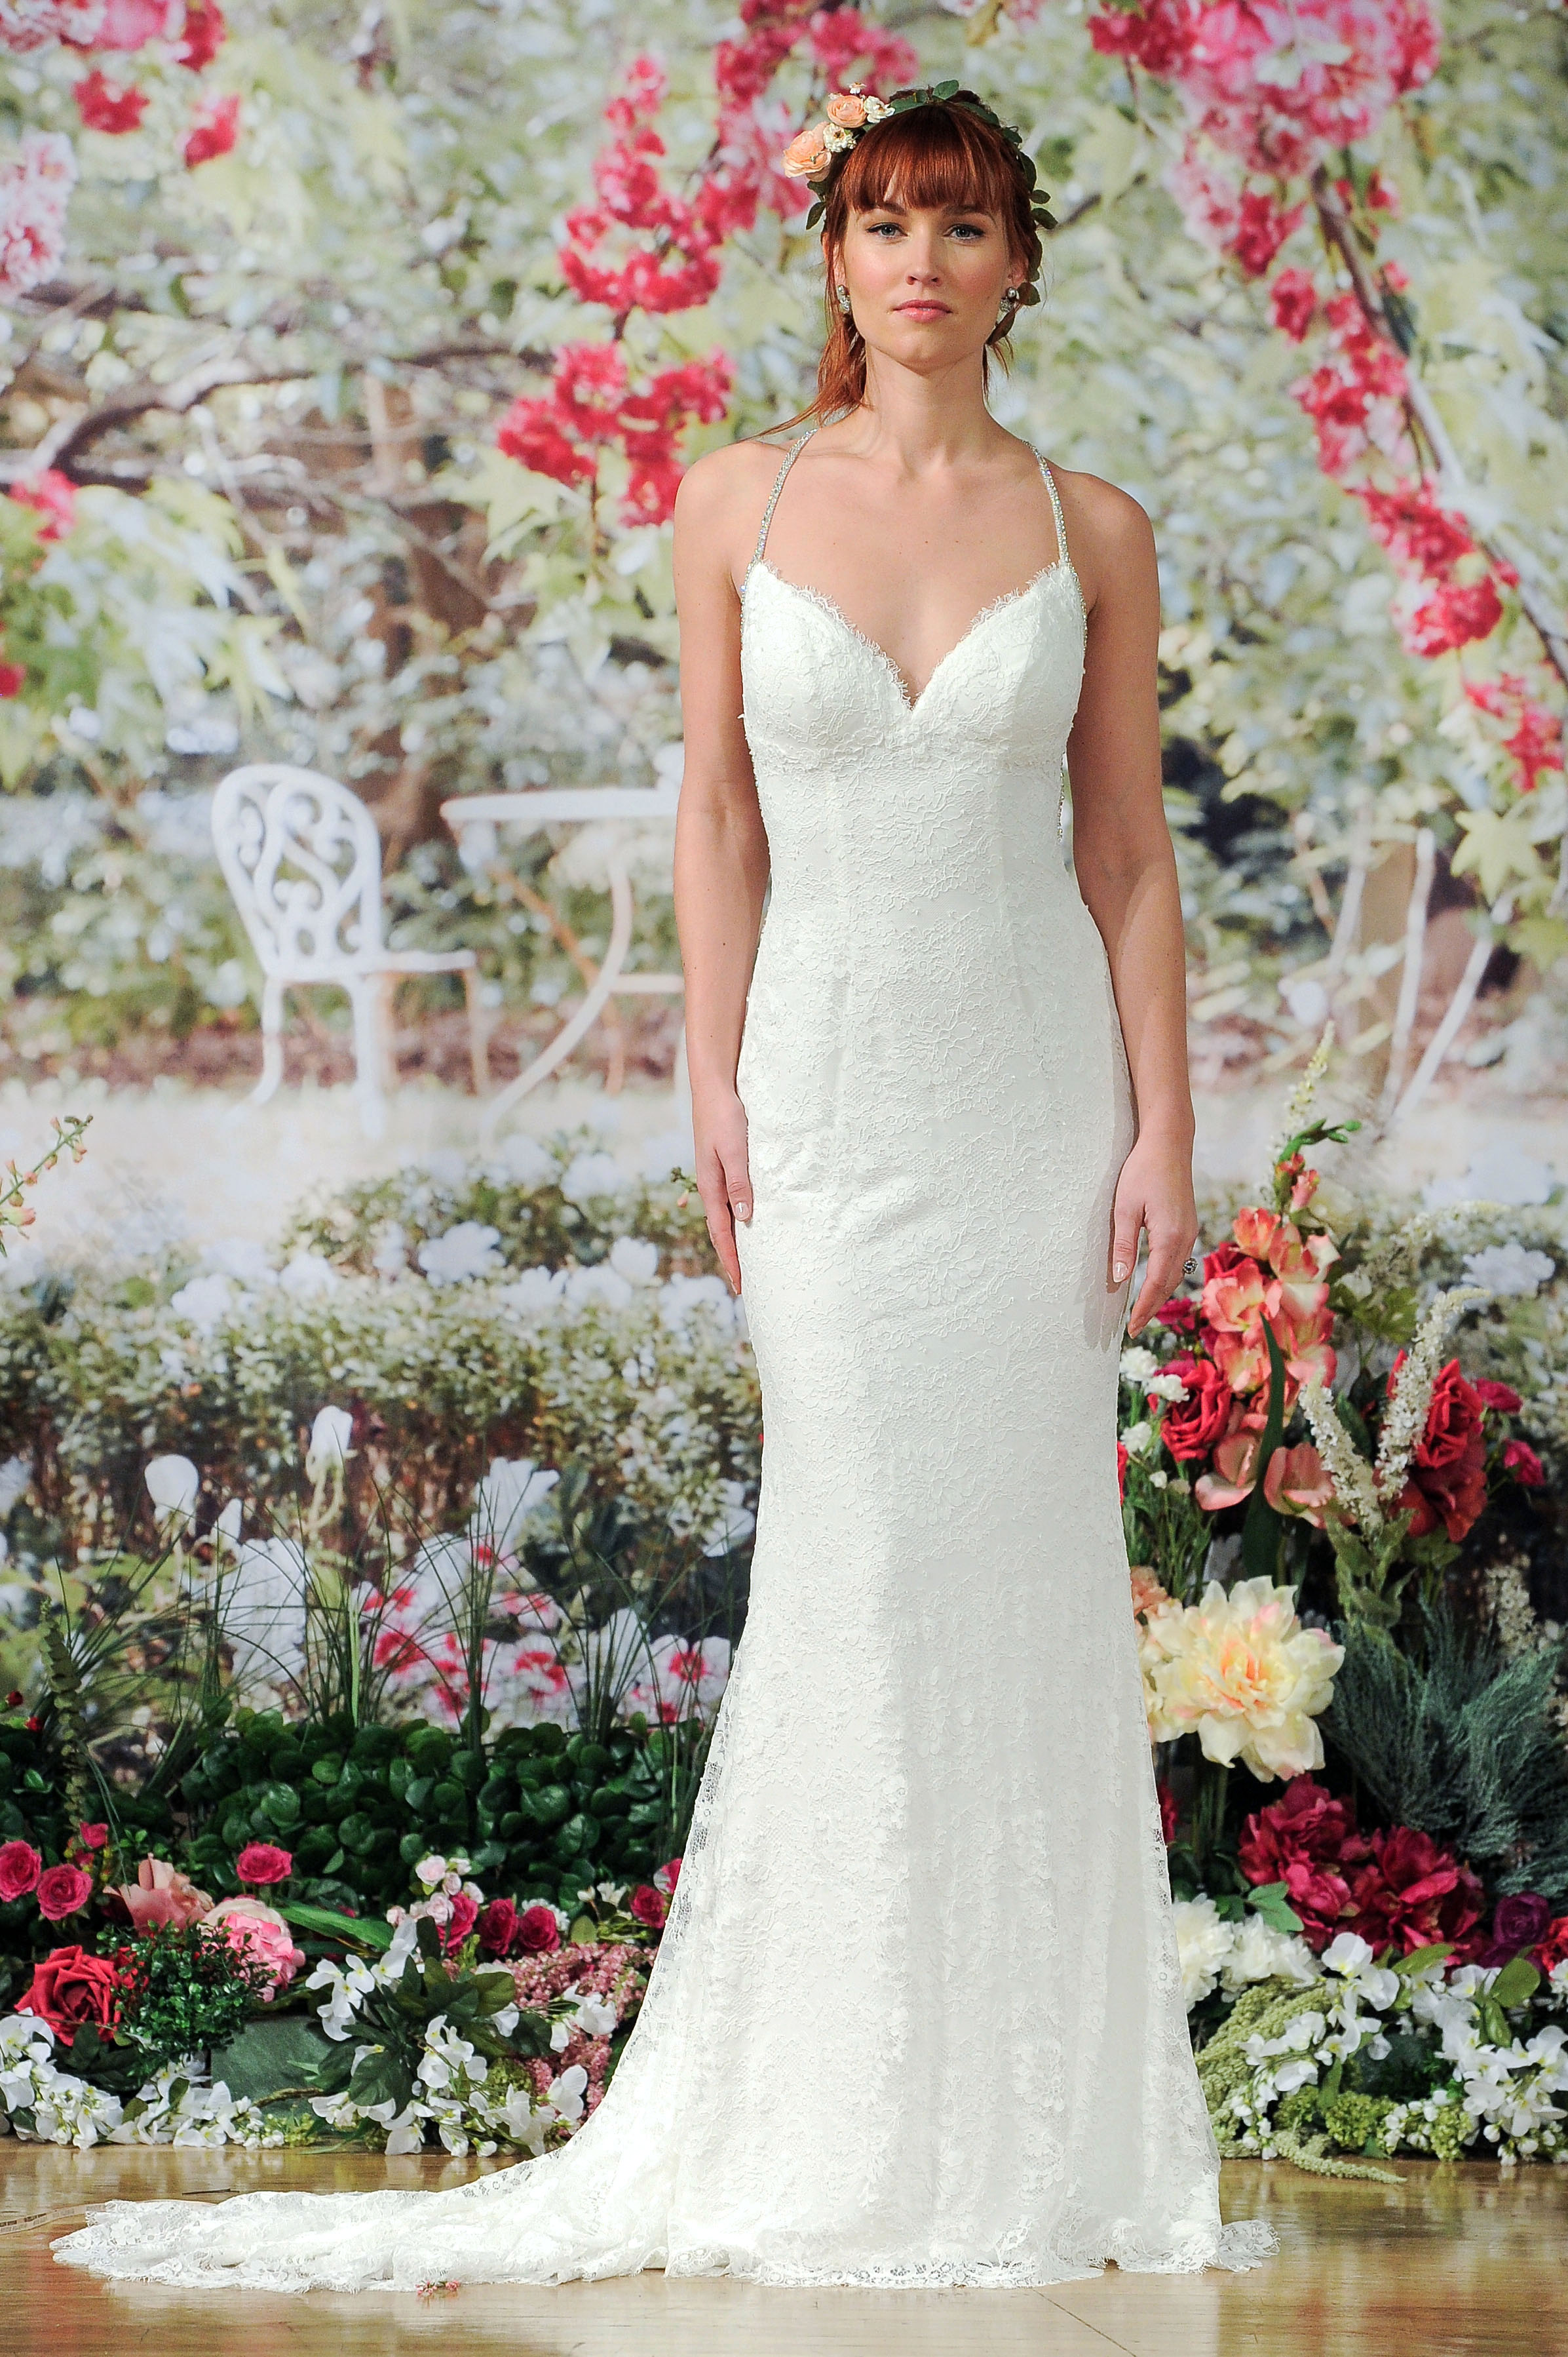 Maggie Sottero Fall 2017 Wedding Dress with Silver Straps